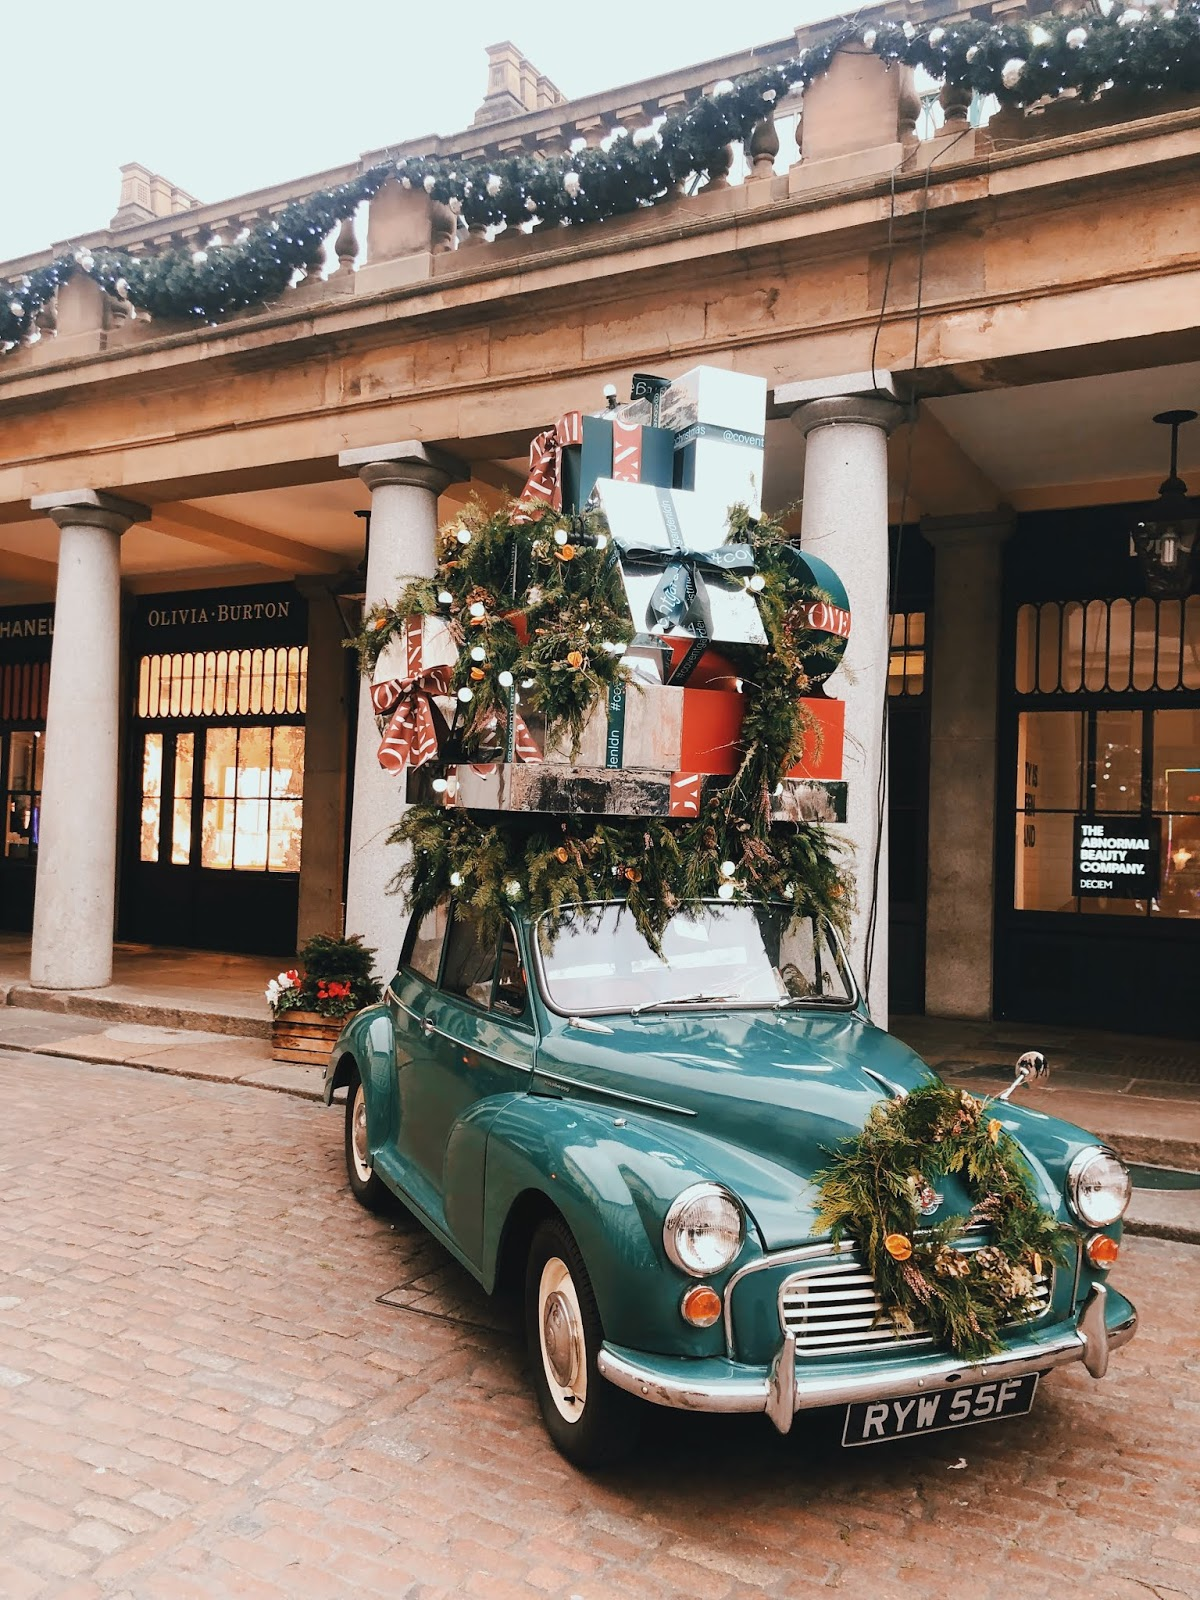 christmas in london, christmas decoration in london, christmas 2018, christmas decoration london 2018, indian blogger, london blogger, covent garden christmas decoration, christmas red, covent garden 2018, covent garden, covent garden green car,